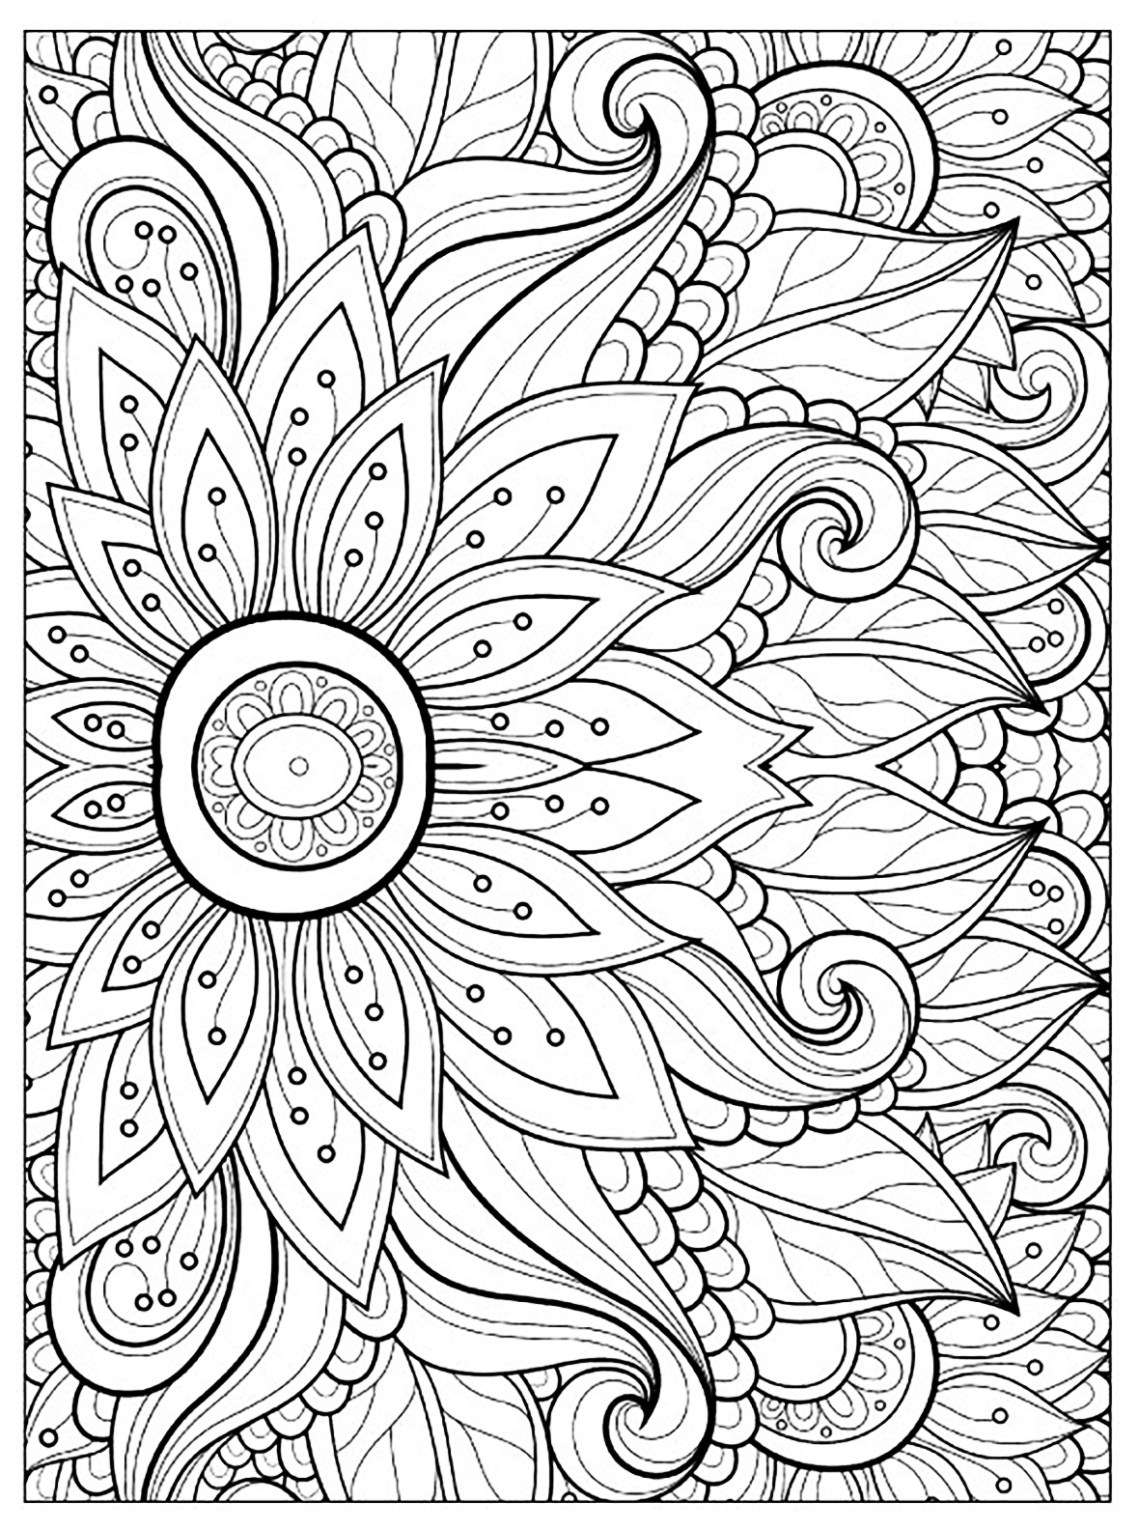 Flowers to download for free - Flowers Kids Coloring Pages | colouring pages flowers